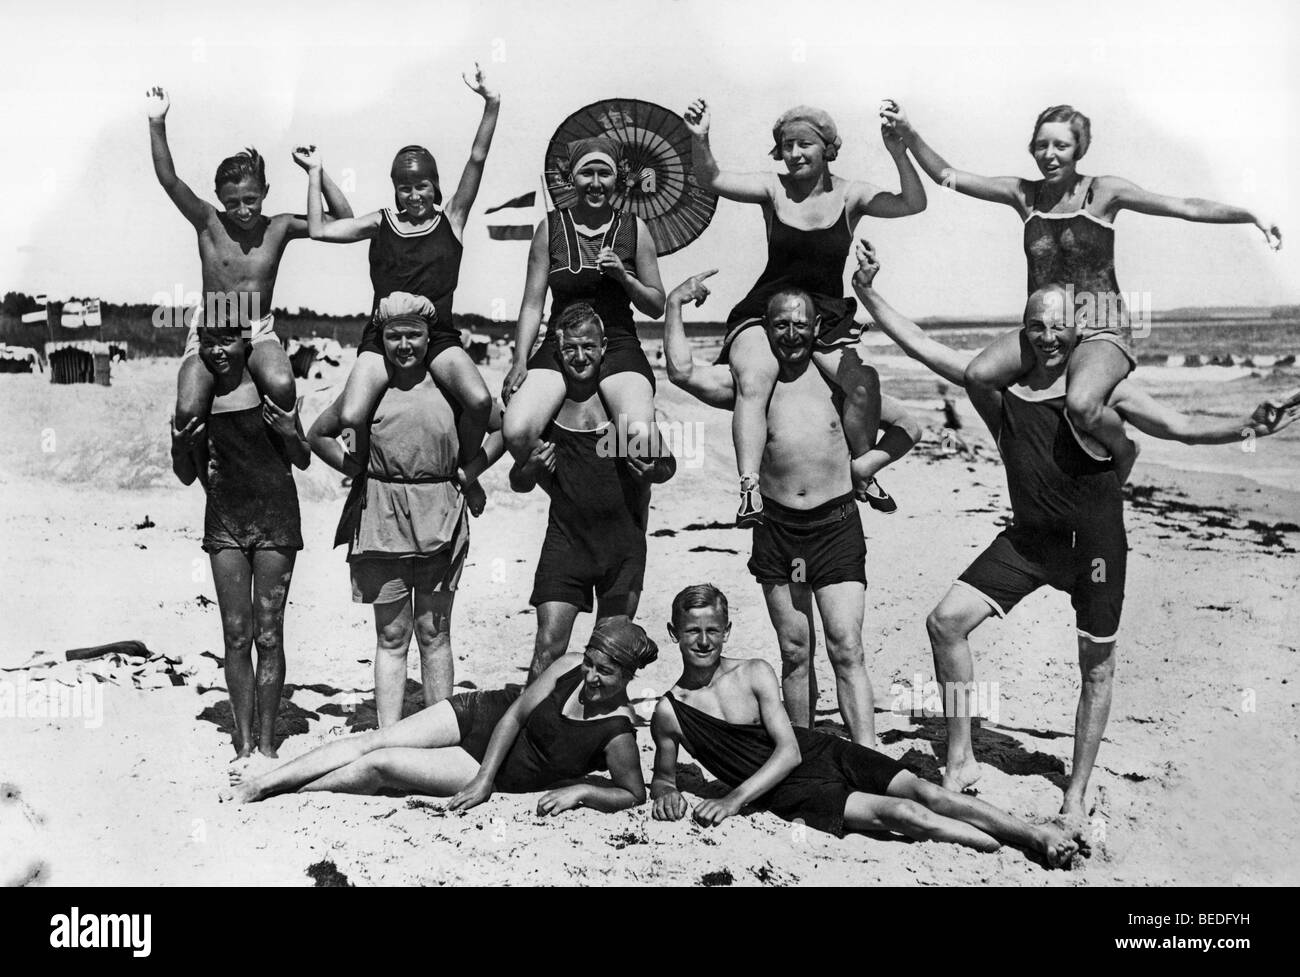 668202c1b24 Historic photograph, happy group of swimmers, Baltic Sea, around 1930 -  Stock Image